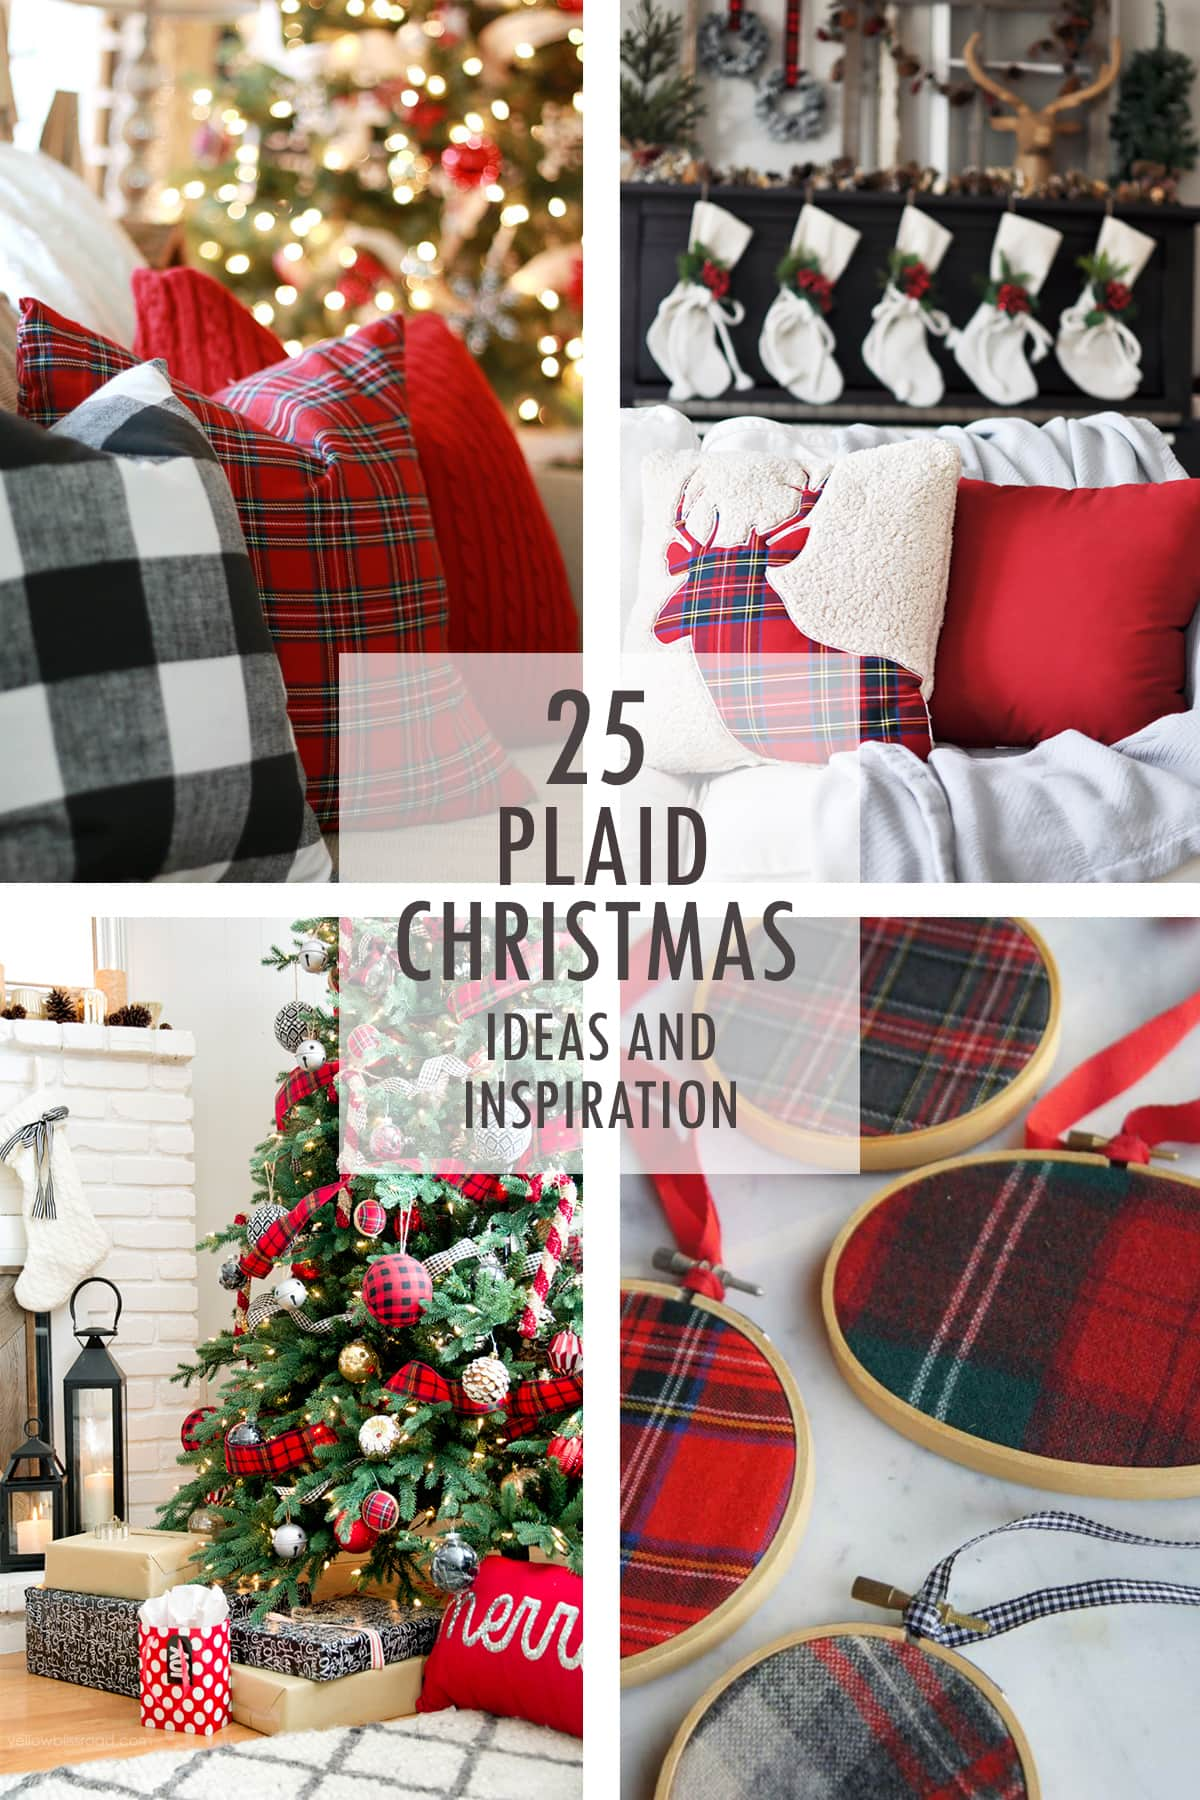 plaid christmas ideas - Christmas Plaid